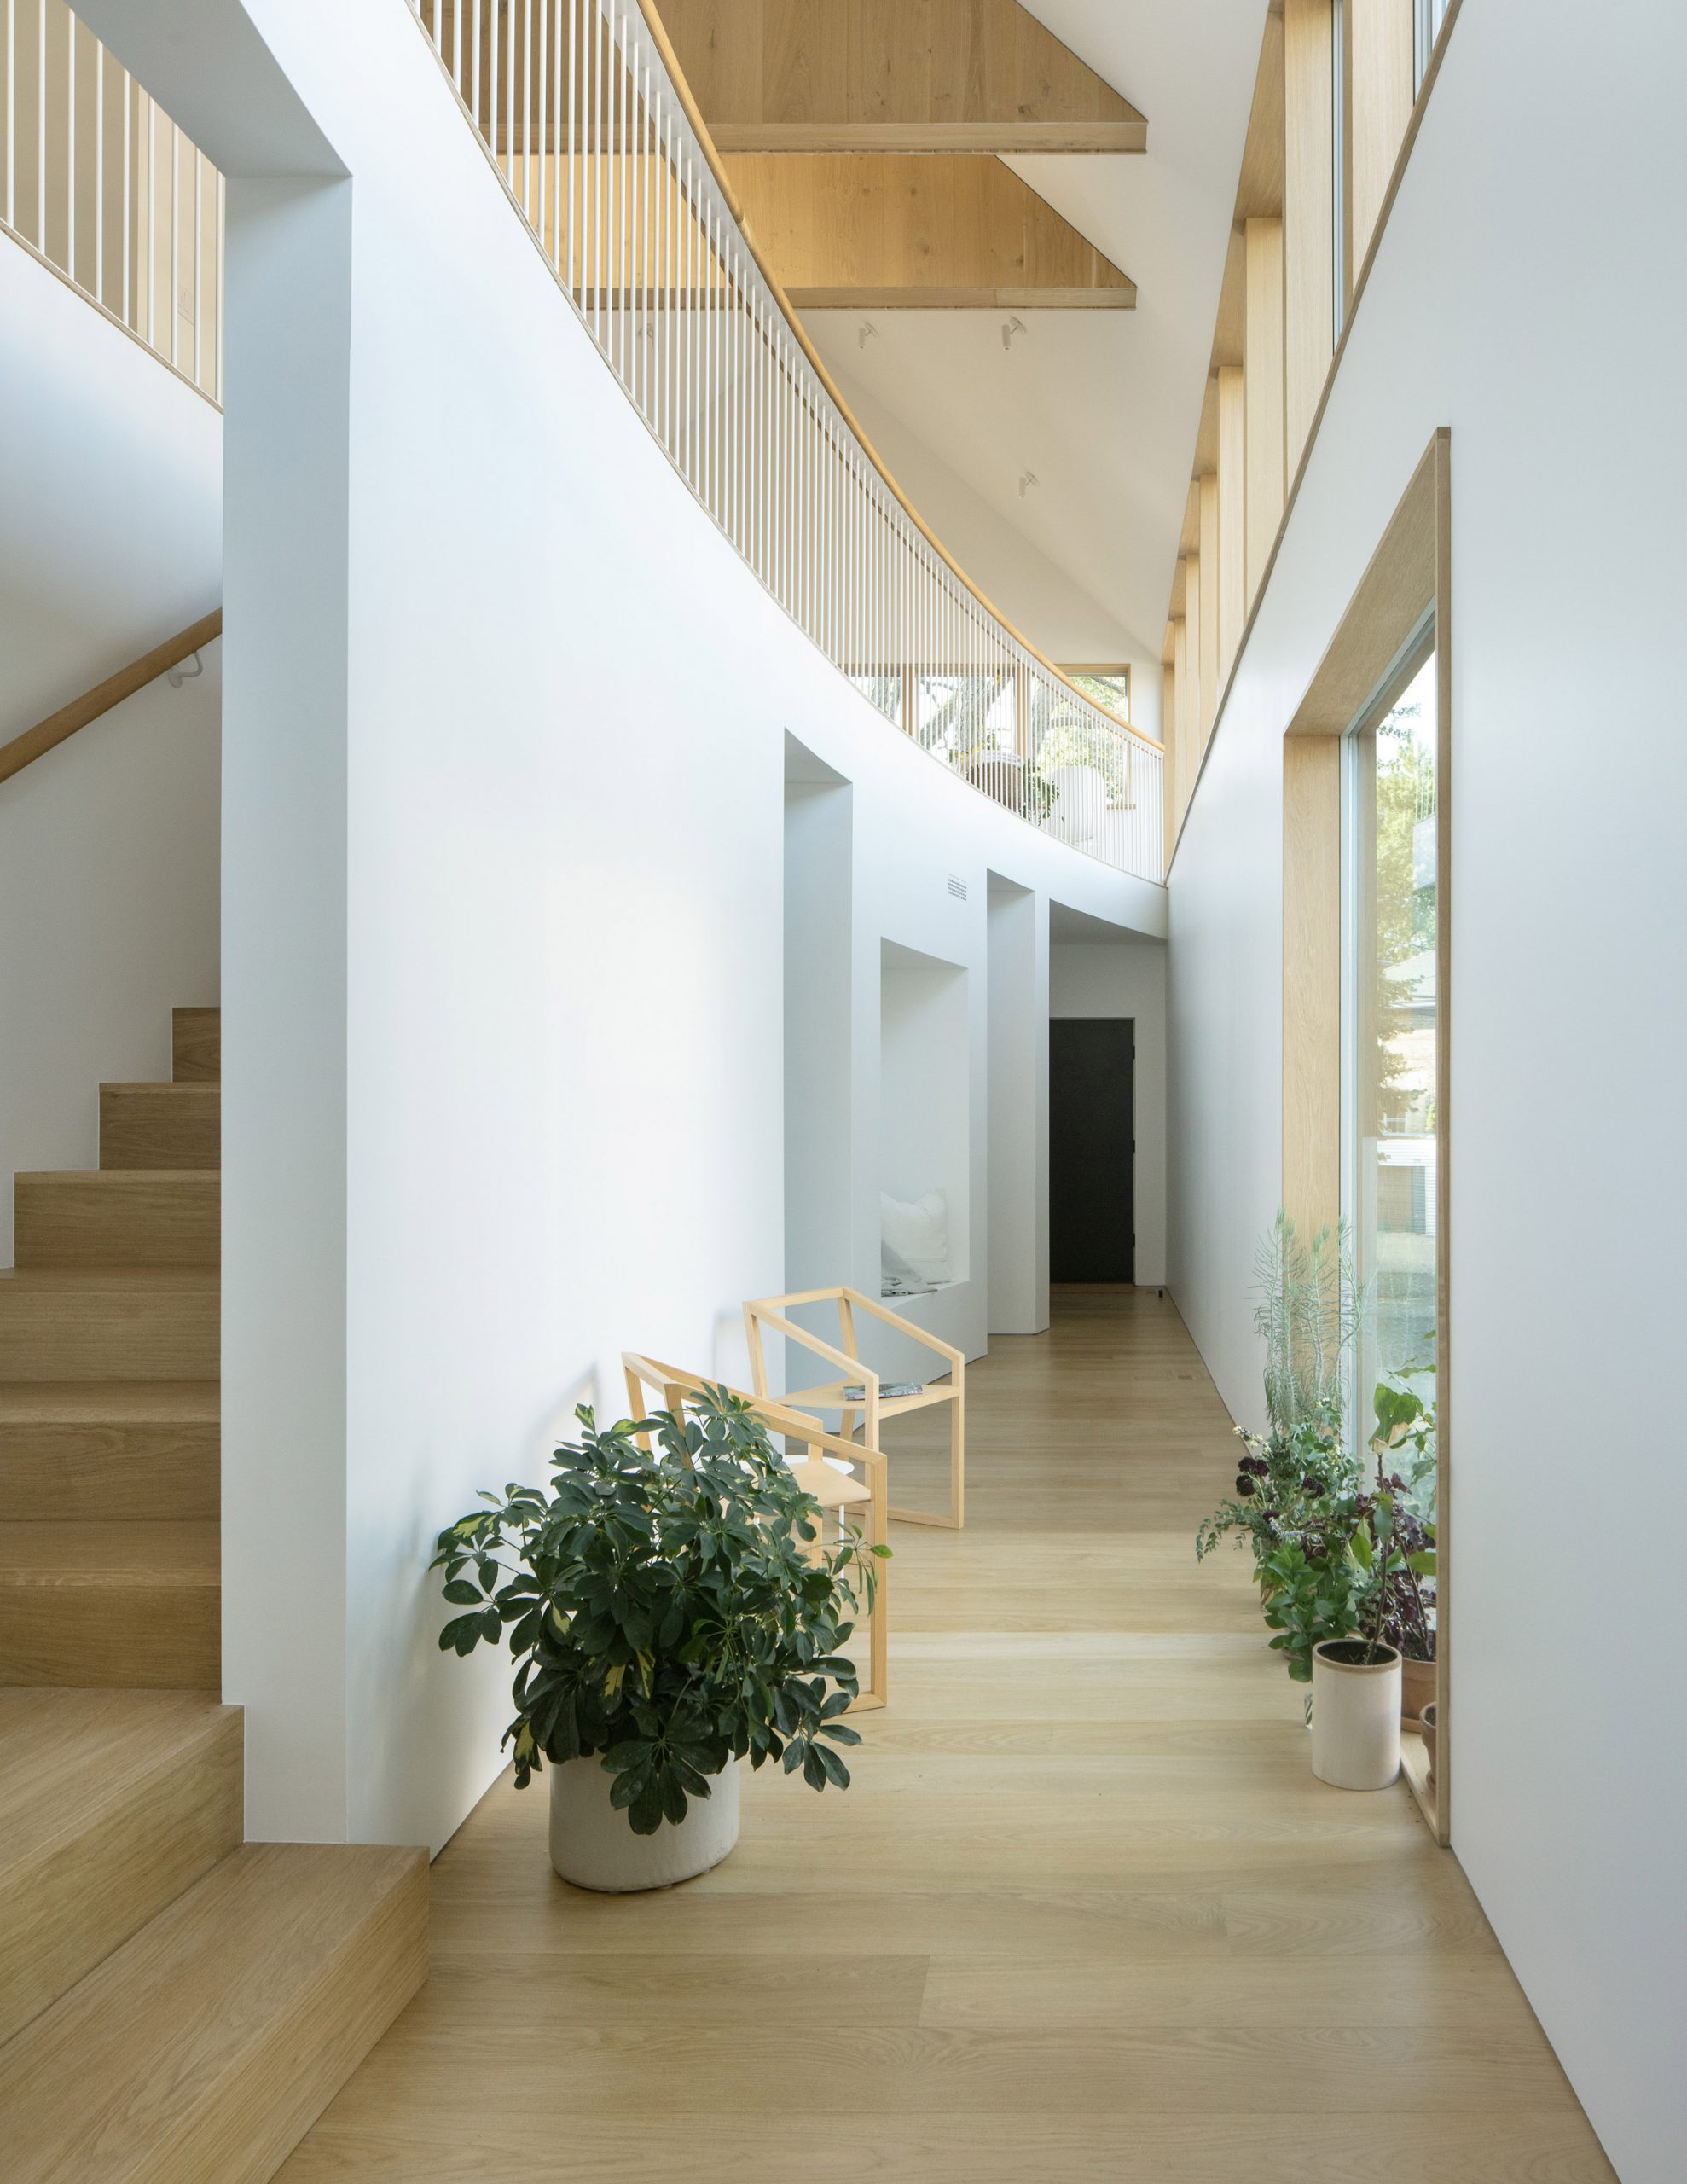 Staircase in Ardmore House by Kwong Von Glinow